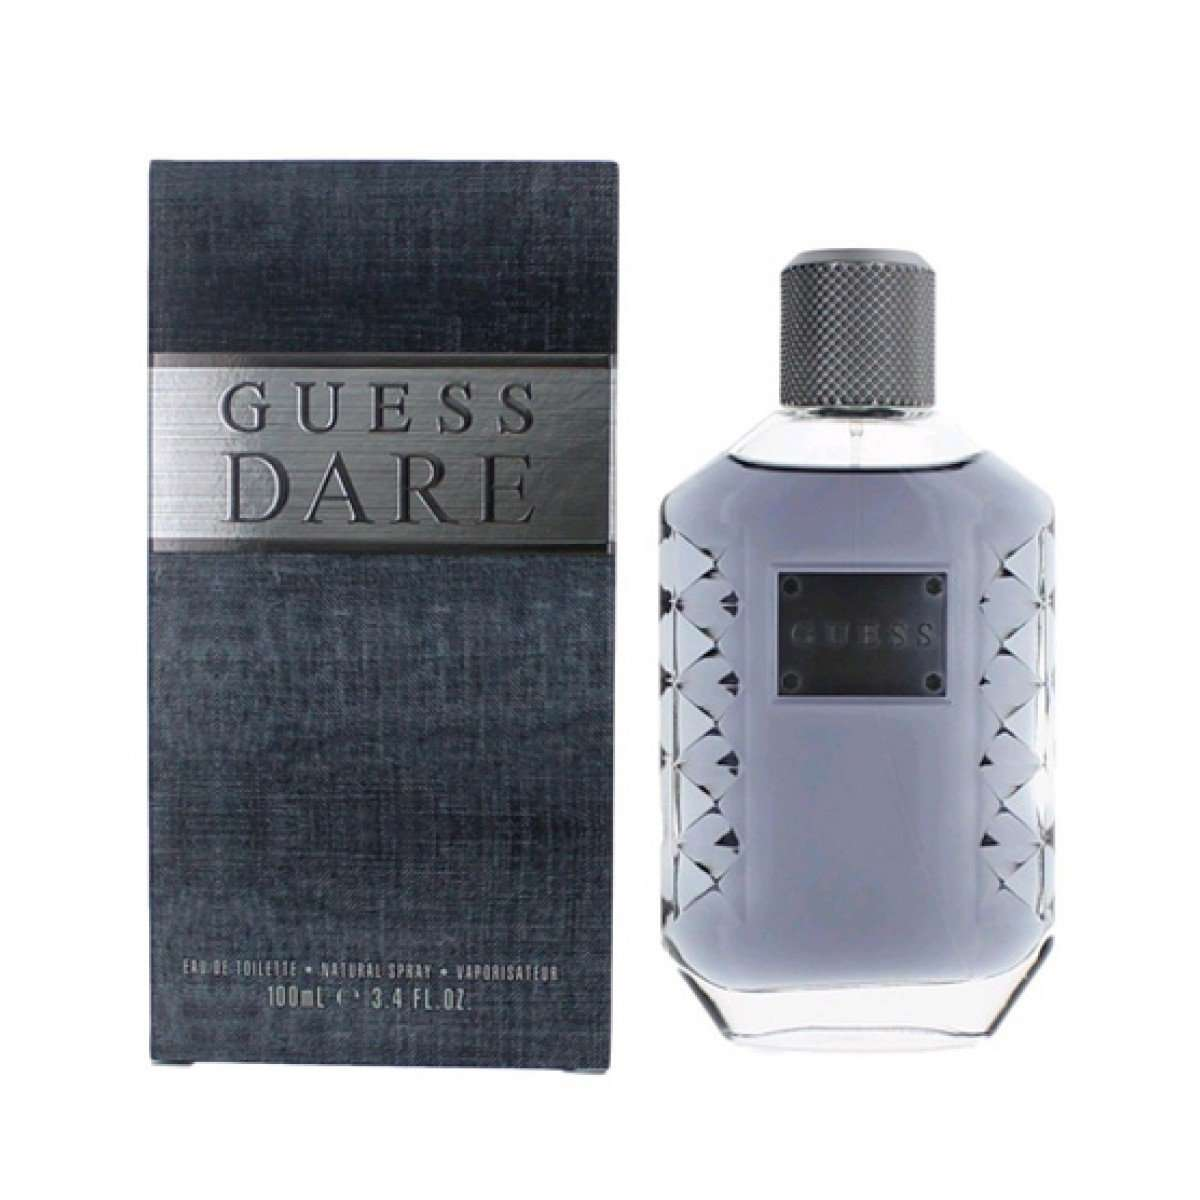 Guess Perfumes In Canada From Perfumeonlineca